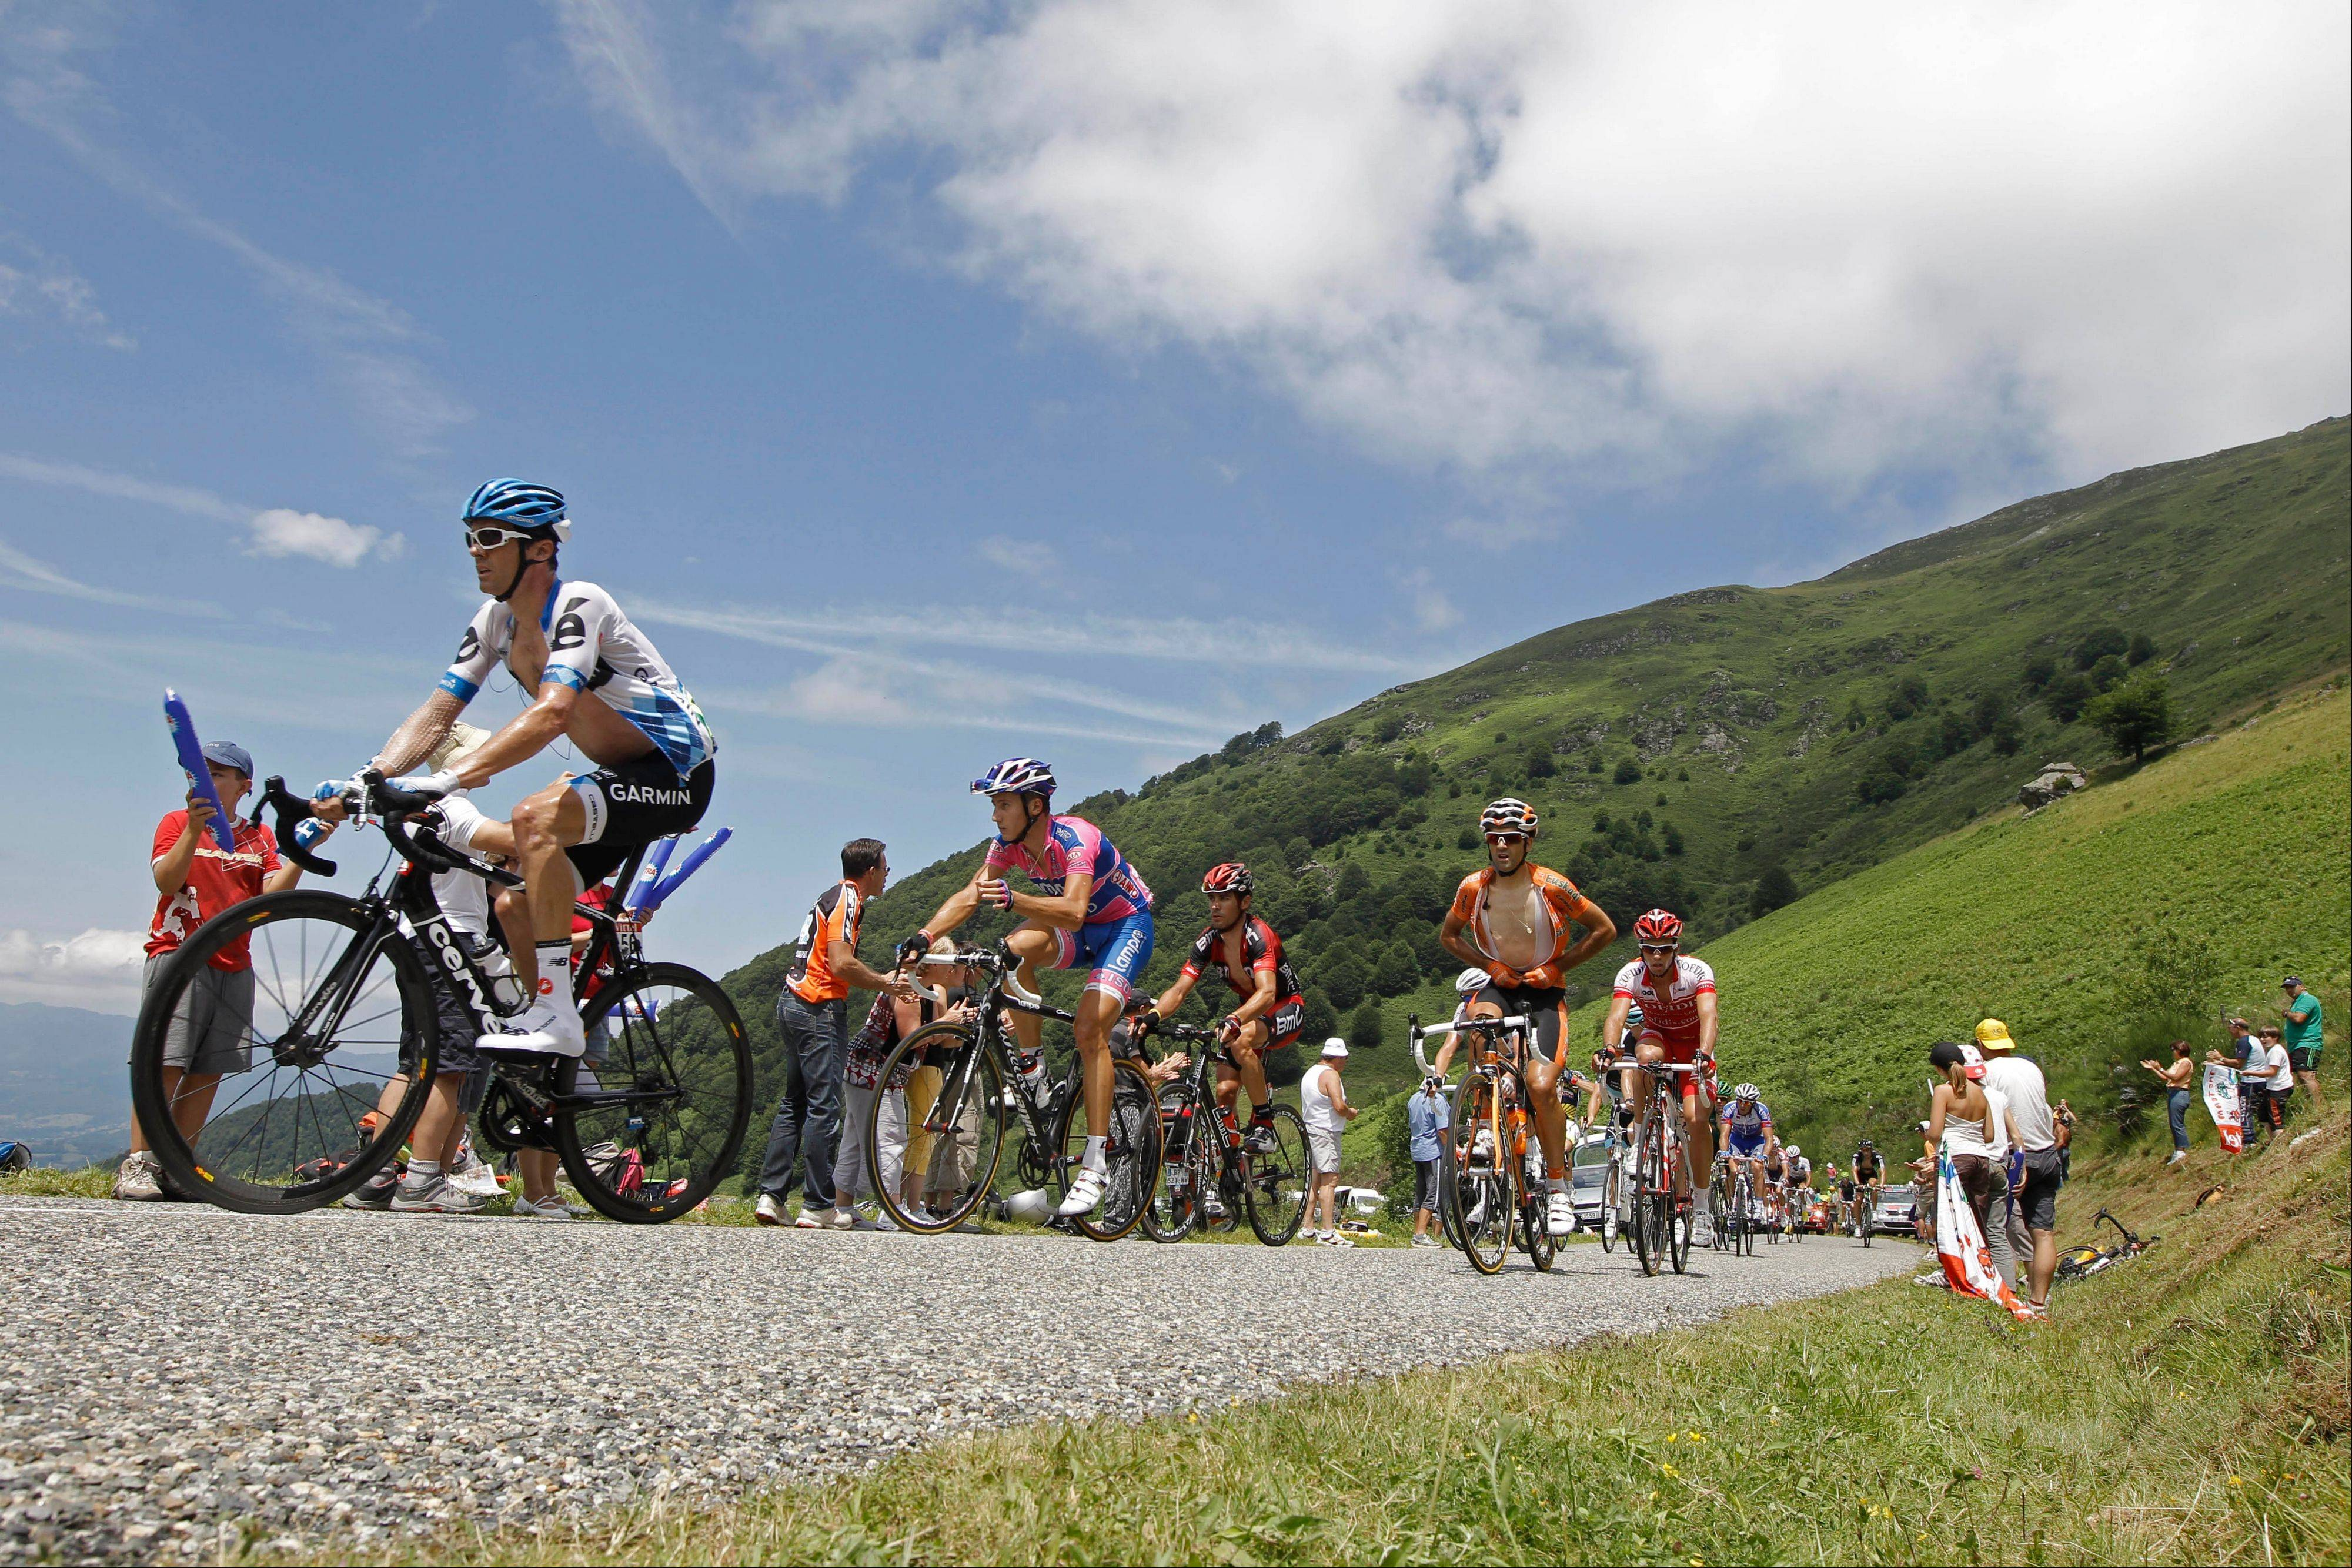 David Millar of Britain, left, and Adriano Malori of Italy, in second position, ride in the breakaway group as they climb Col de la Core pass during the 14th stage of the Tour de France Saturday.